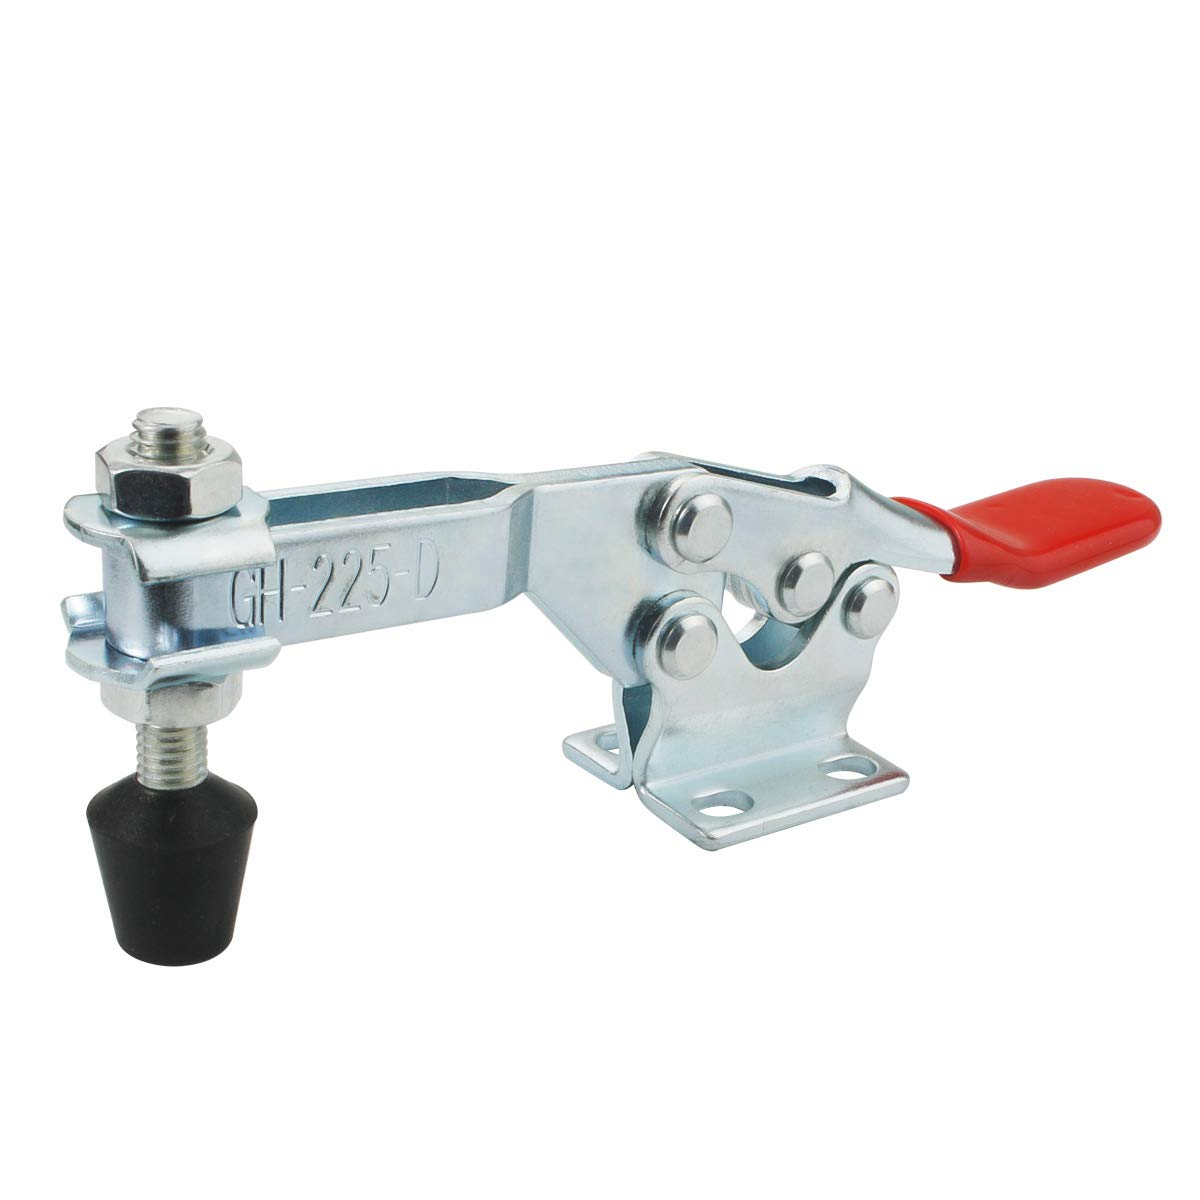 BNYZWOT 500lbs Holding Capacity Toggle Clamps Horizontal Quick-Release Handle Toggle Clamp 225D 2Pcs